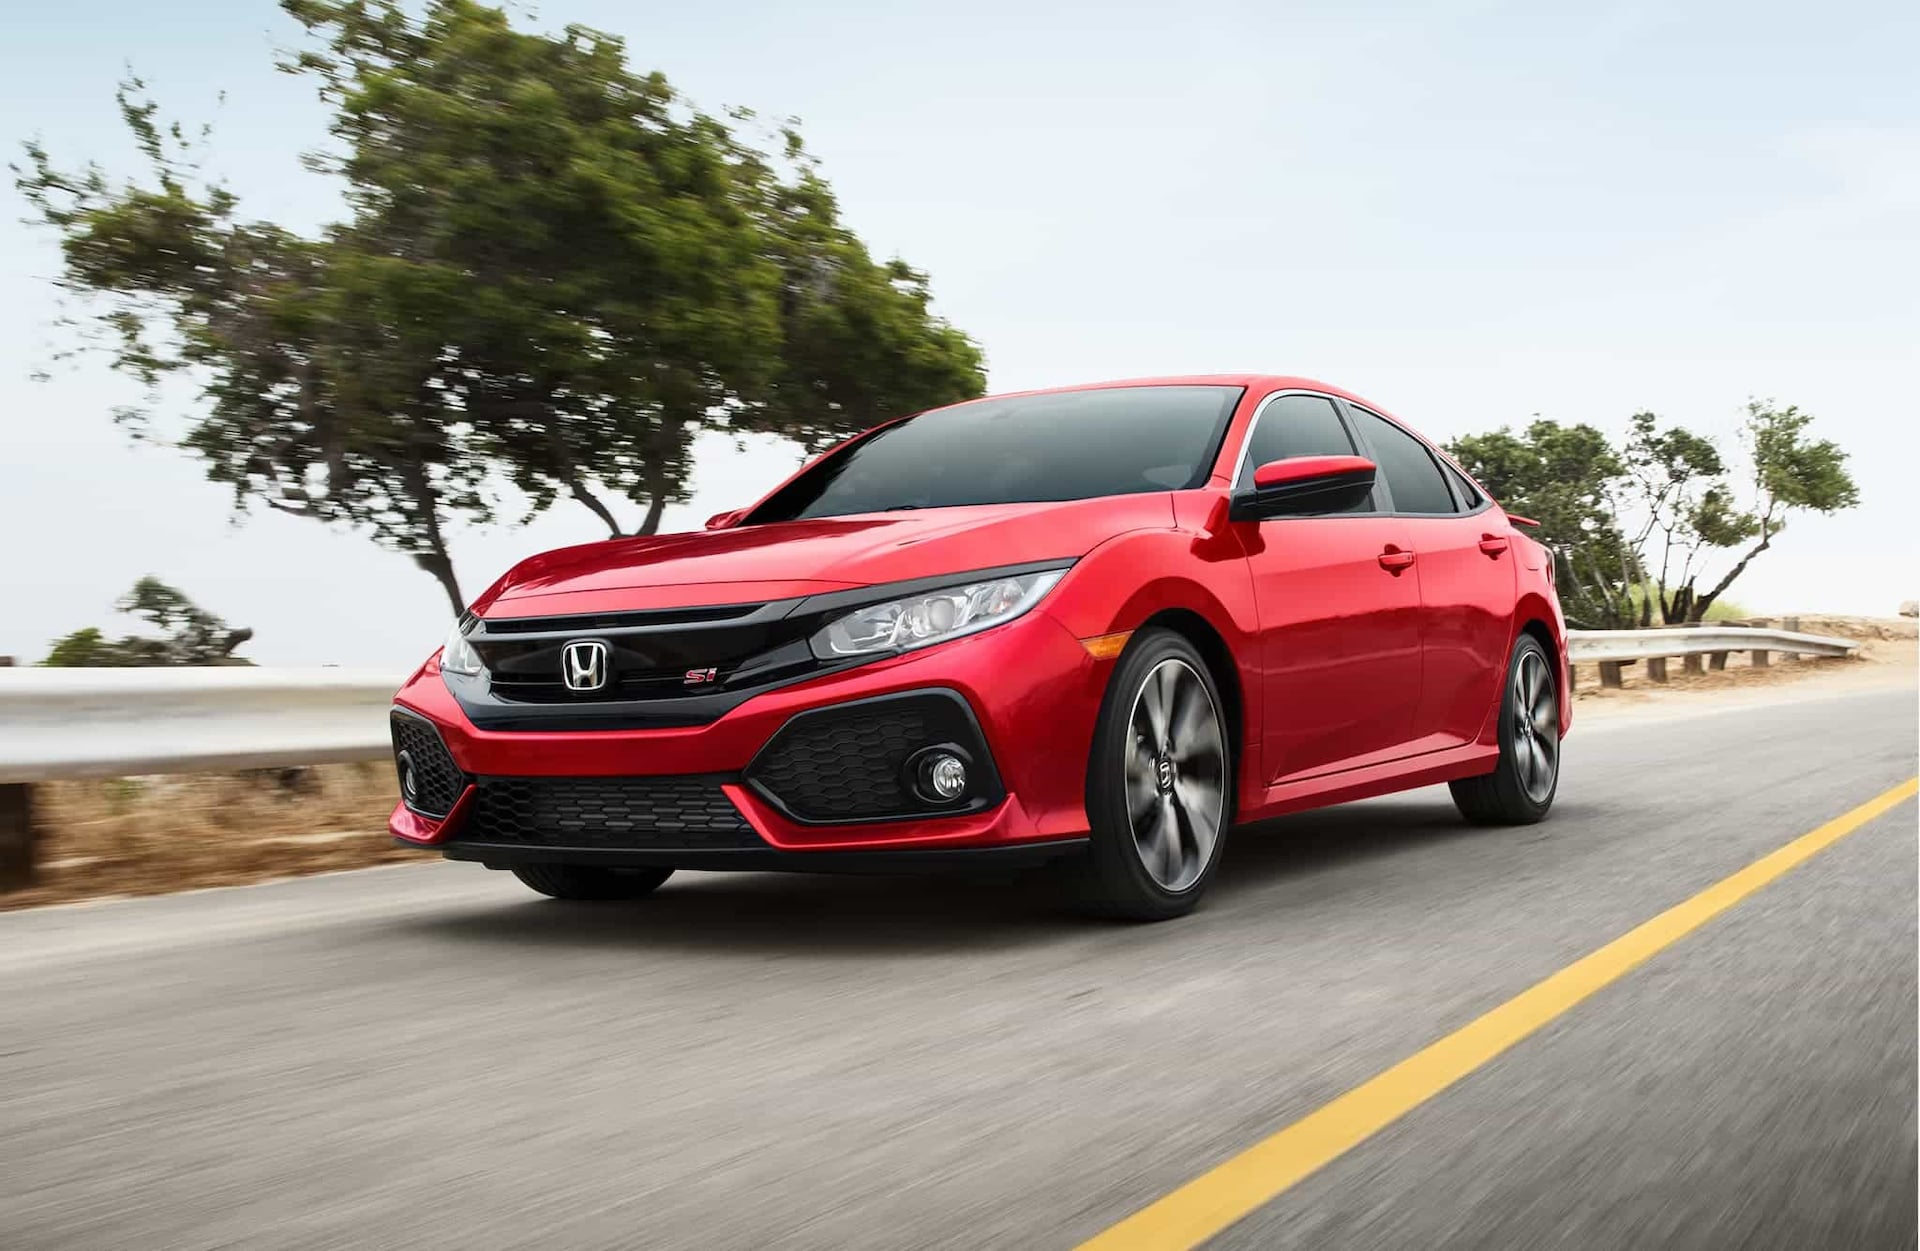 2019 Civic Si Sedan Compact Sport Sedan Honda